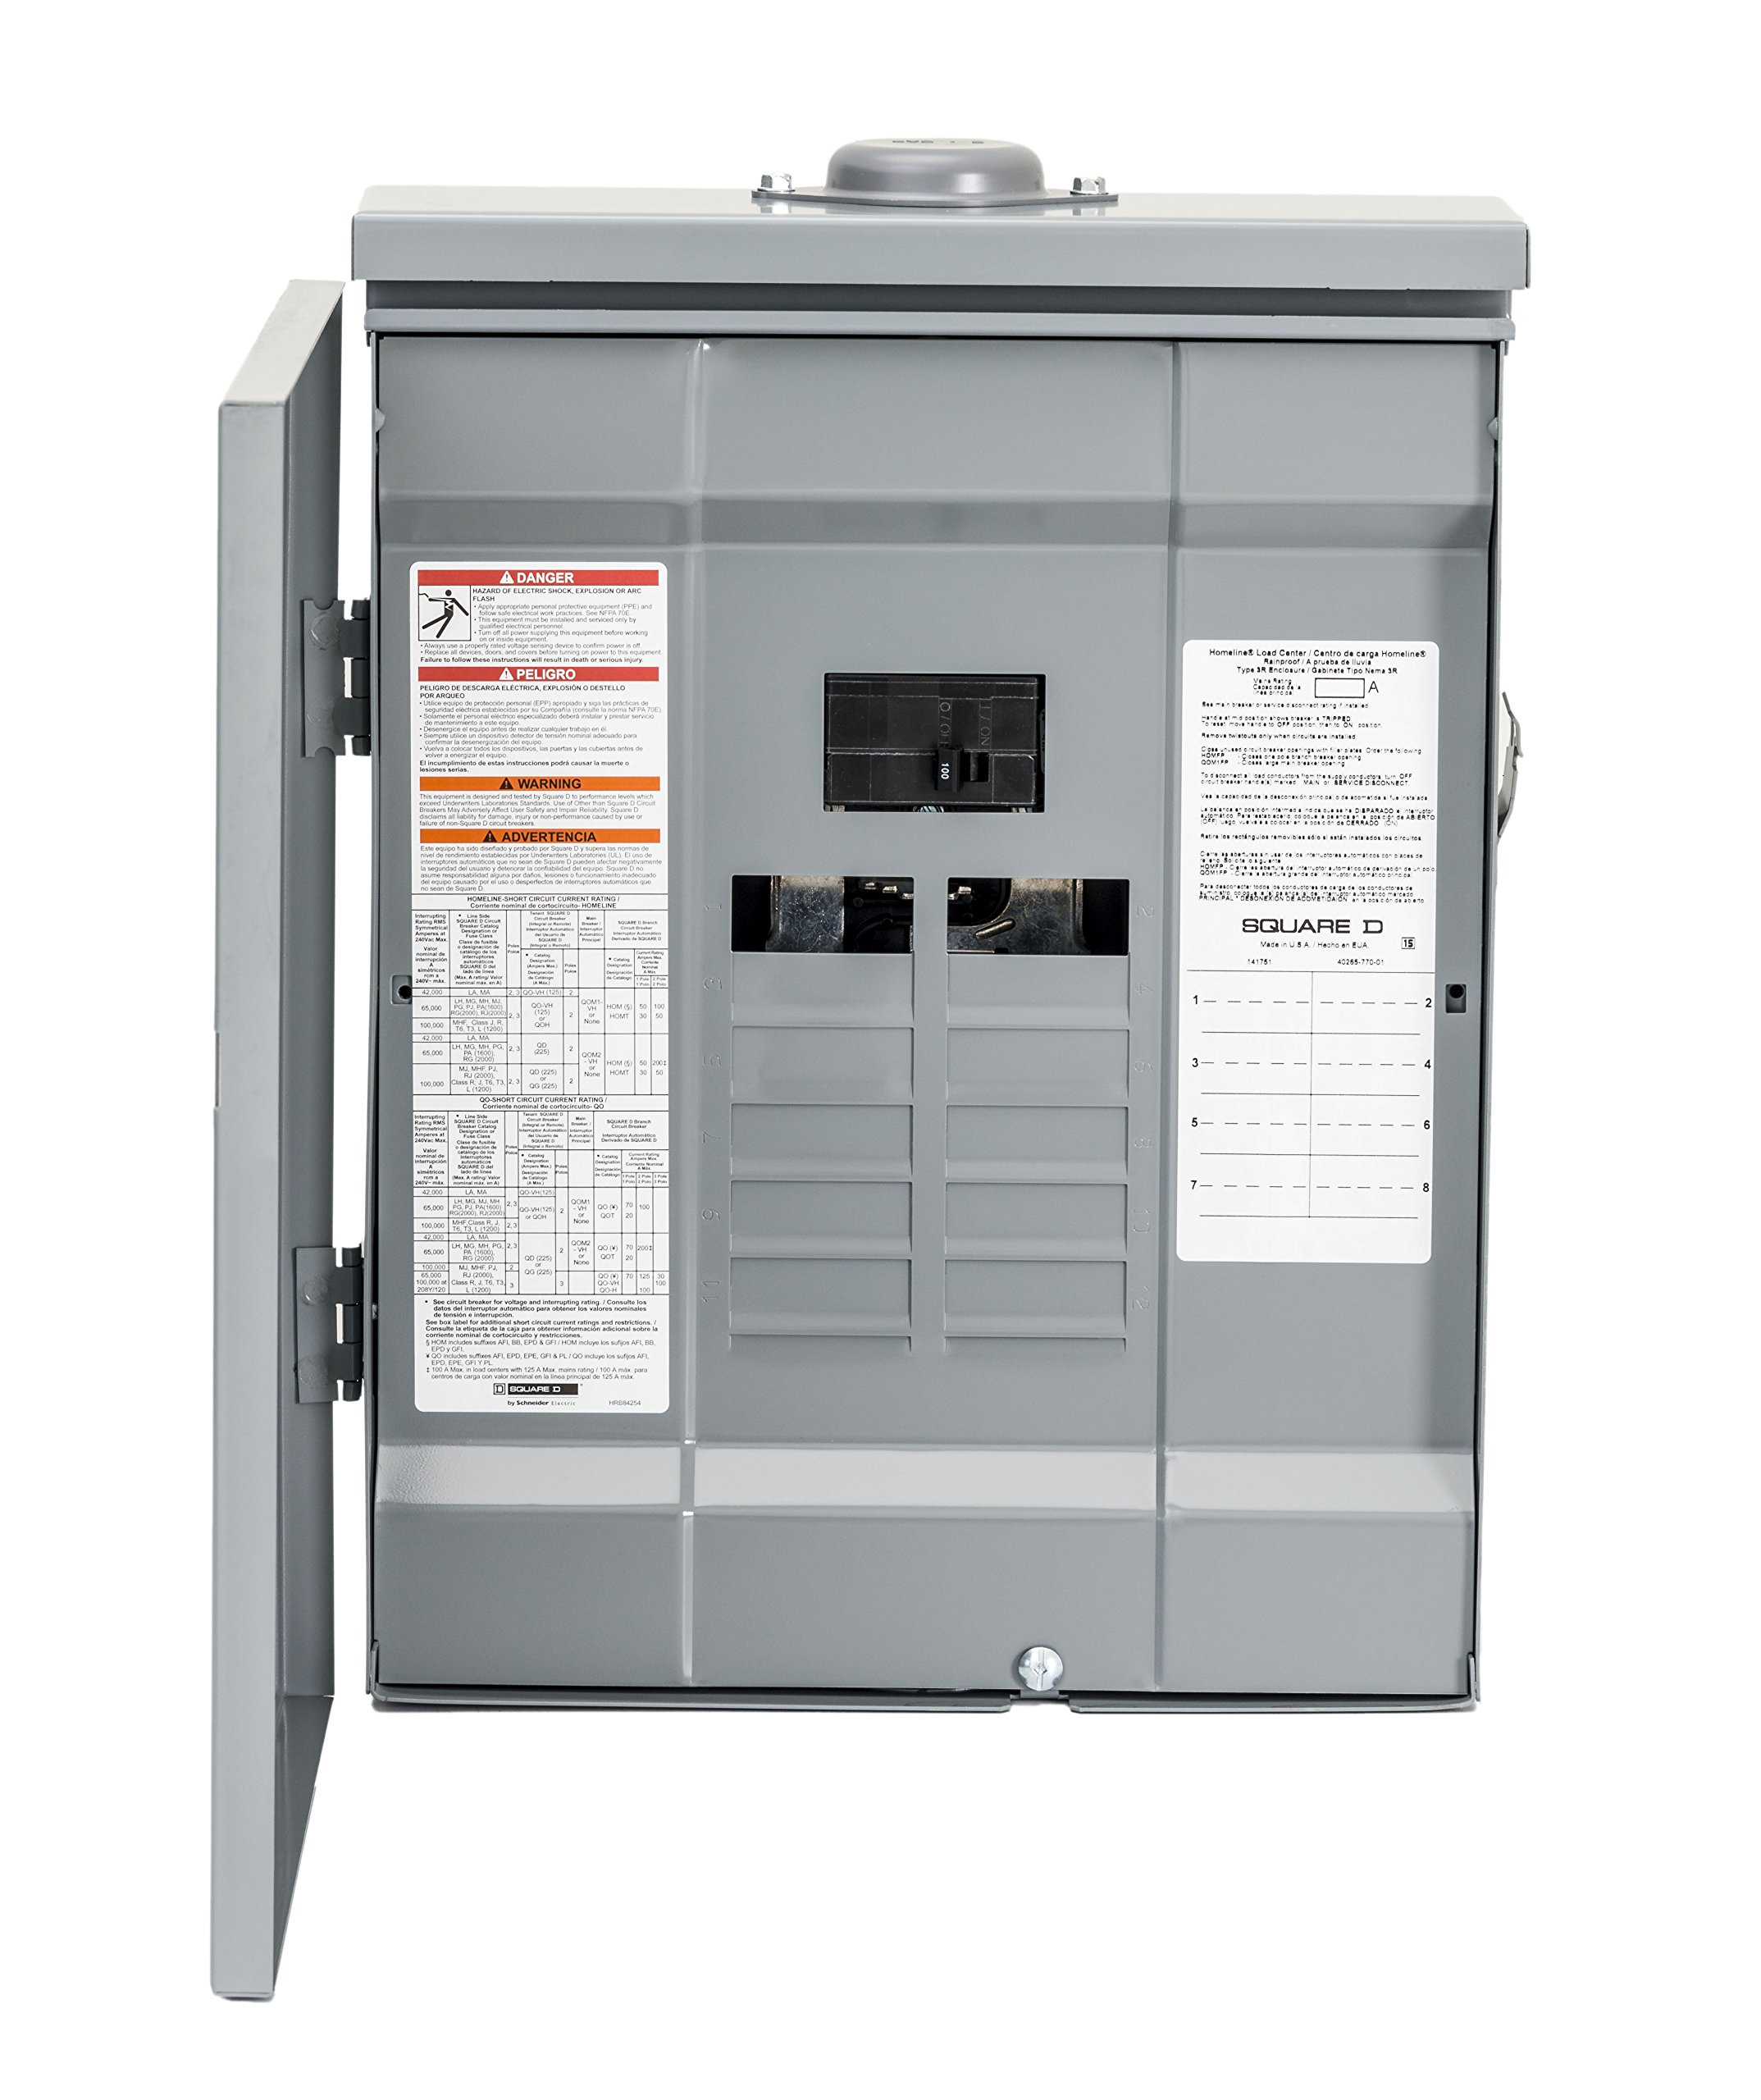 Square D by Schneider Electric HOM816M100PRB Homeline 100 Amp 8-Space 16-Circuit Outdoor Main Breaker Load Center (Plug-on Neutral Ready),